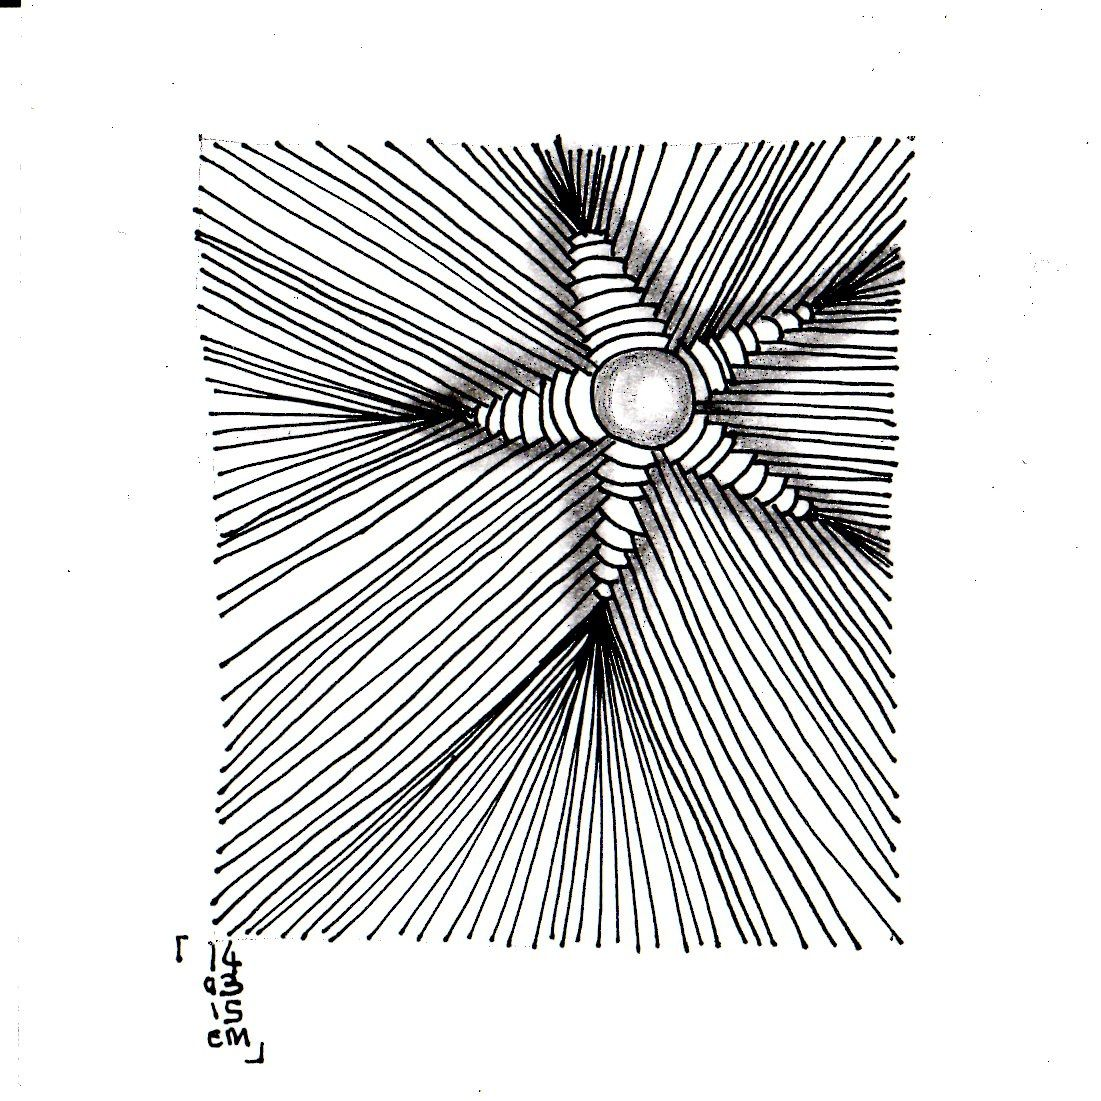 Zentangle® #10 le 14 mars 2015 emma messana